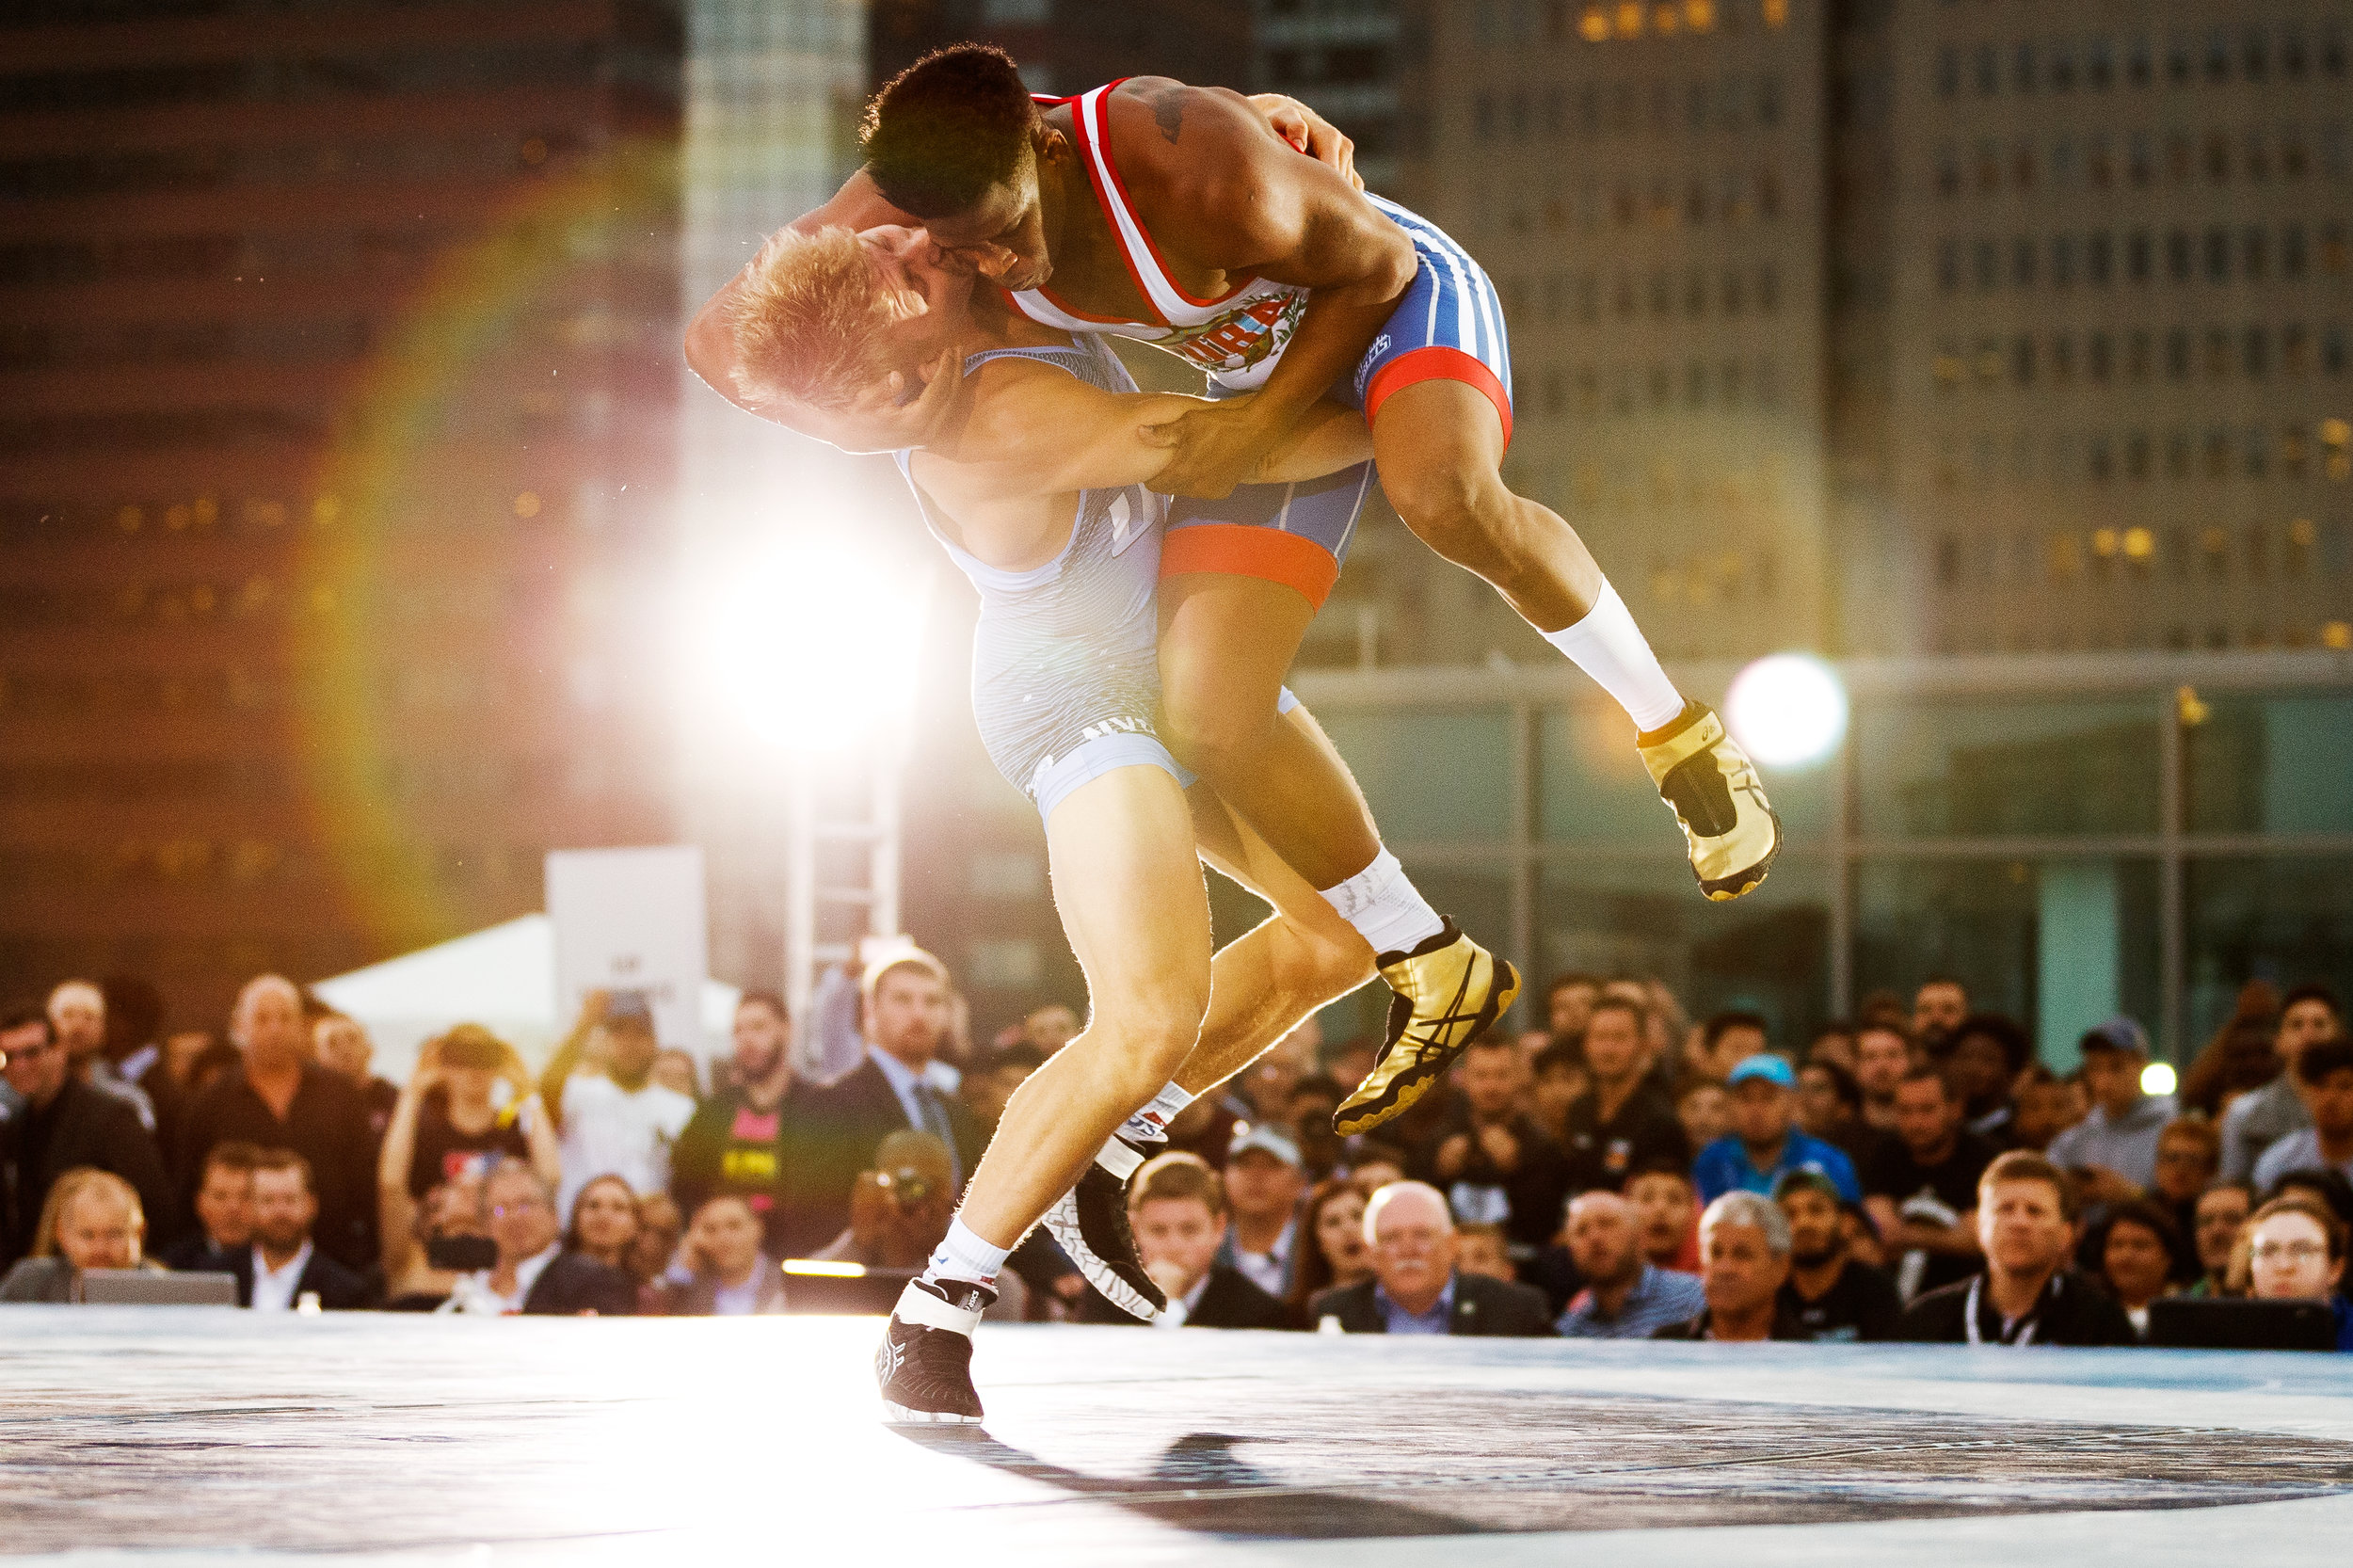 Kyle Dake, USA, lifts Livan Lopez Azcuy, Cuba, off of the mat during the 79kg match at Beat the Streets - Rumble on the River on May 17, 2018 in New York City. Dake defeated Lopez Azcuy by technical fall (13-1) in the third period. (Photo by Bryan Bennett)